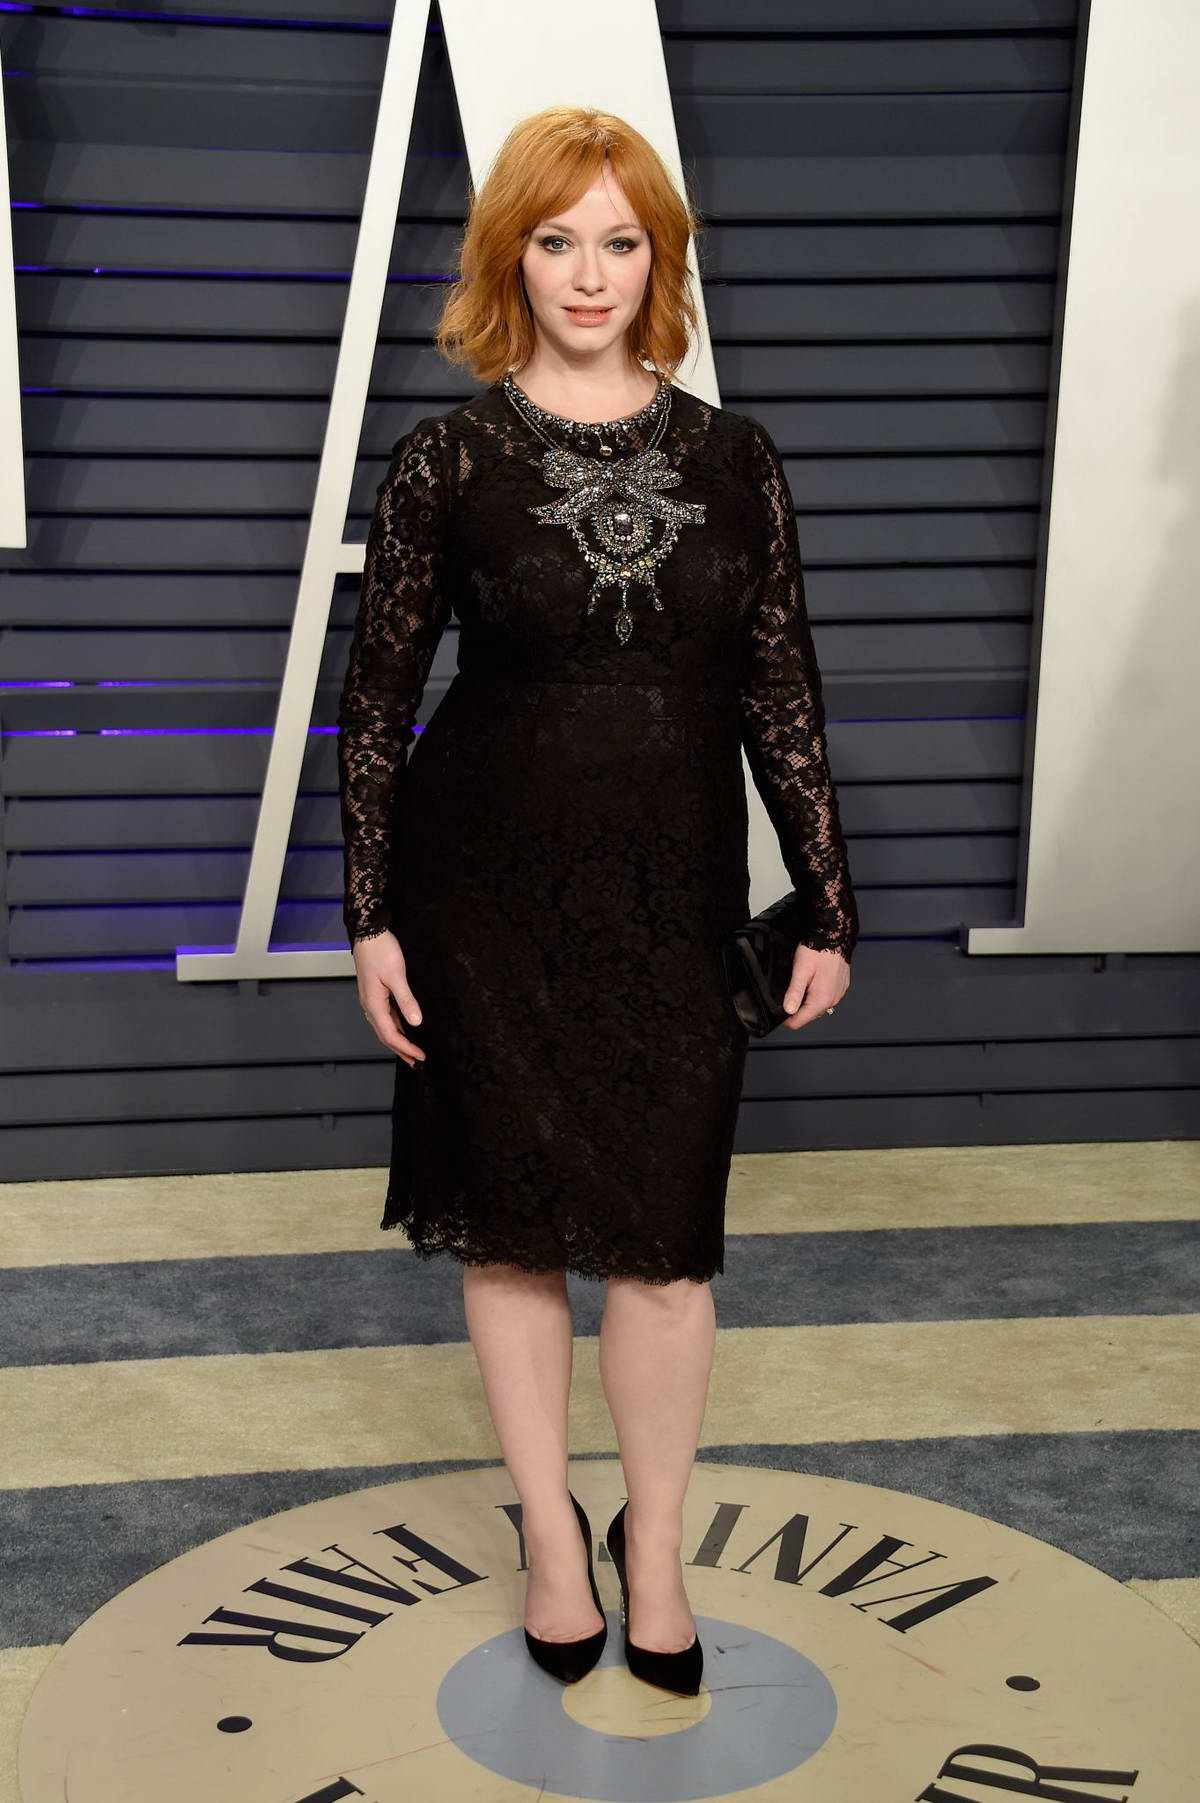 Christina Hendricks attends the Vanity Fair Oscar Party at Wallis Annenberg Center for the Performing Arts in Beverly Hills, California